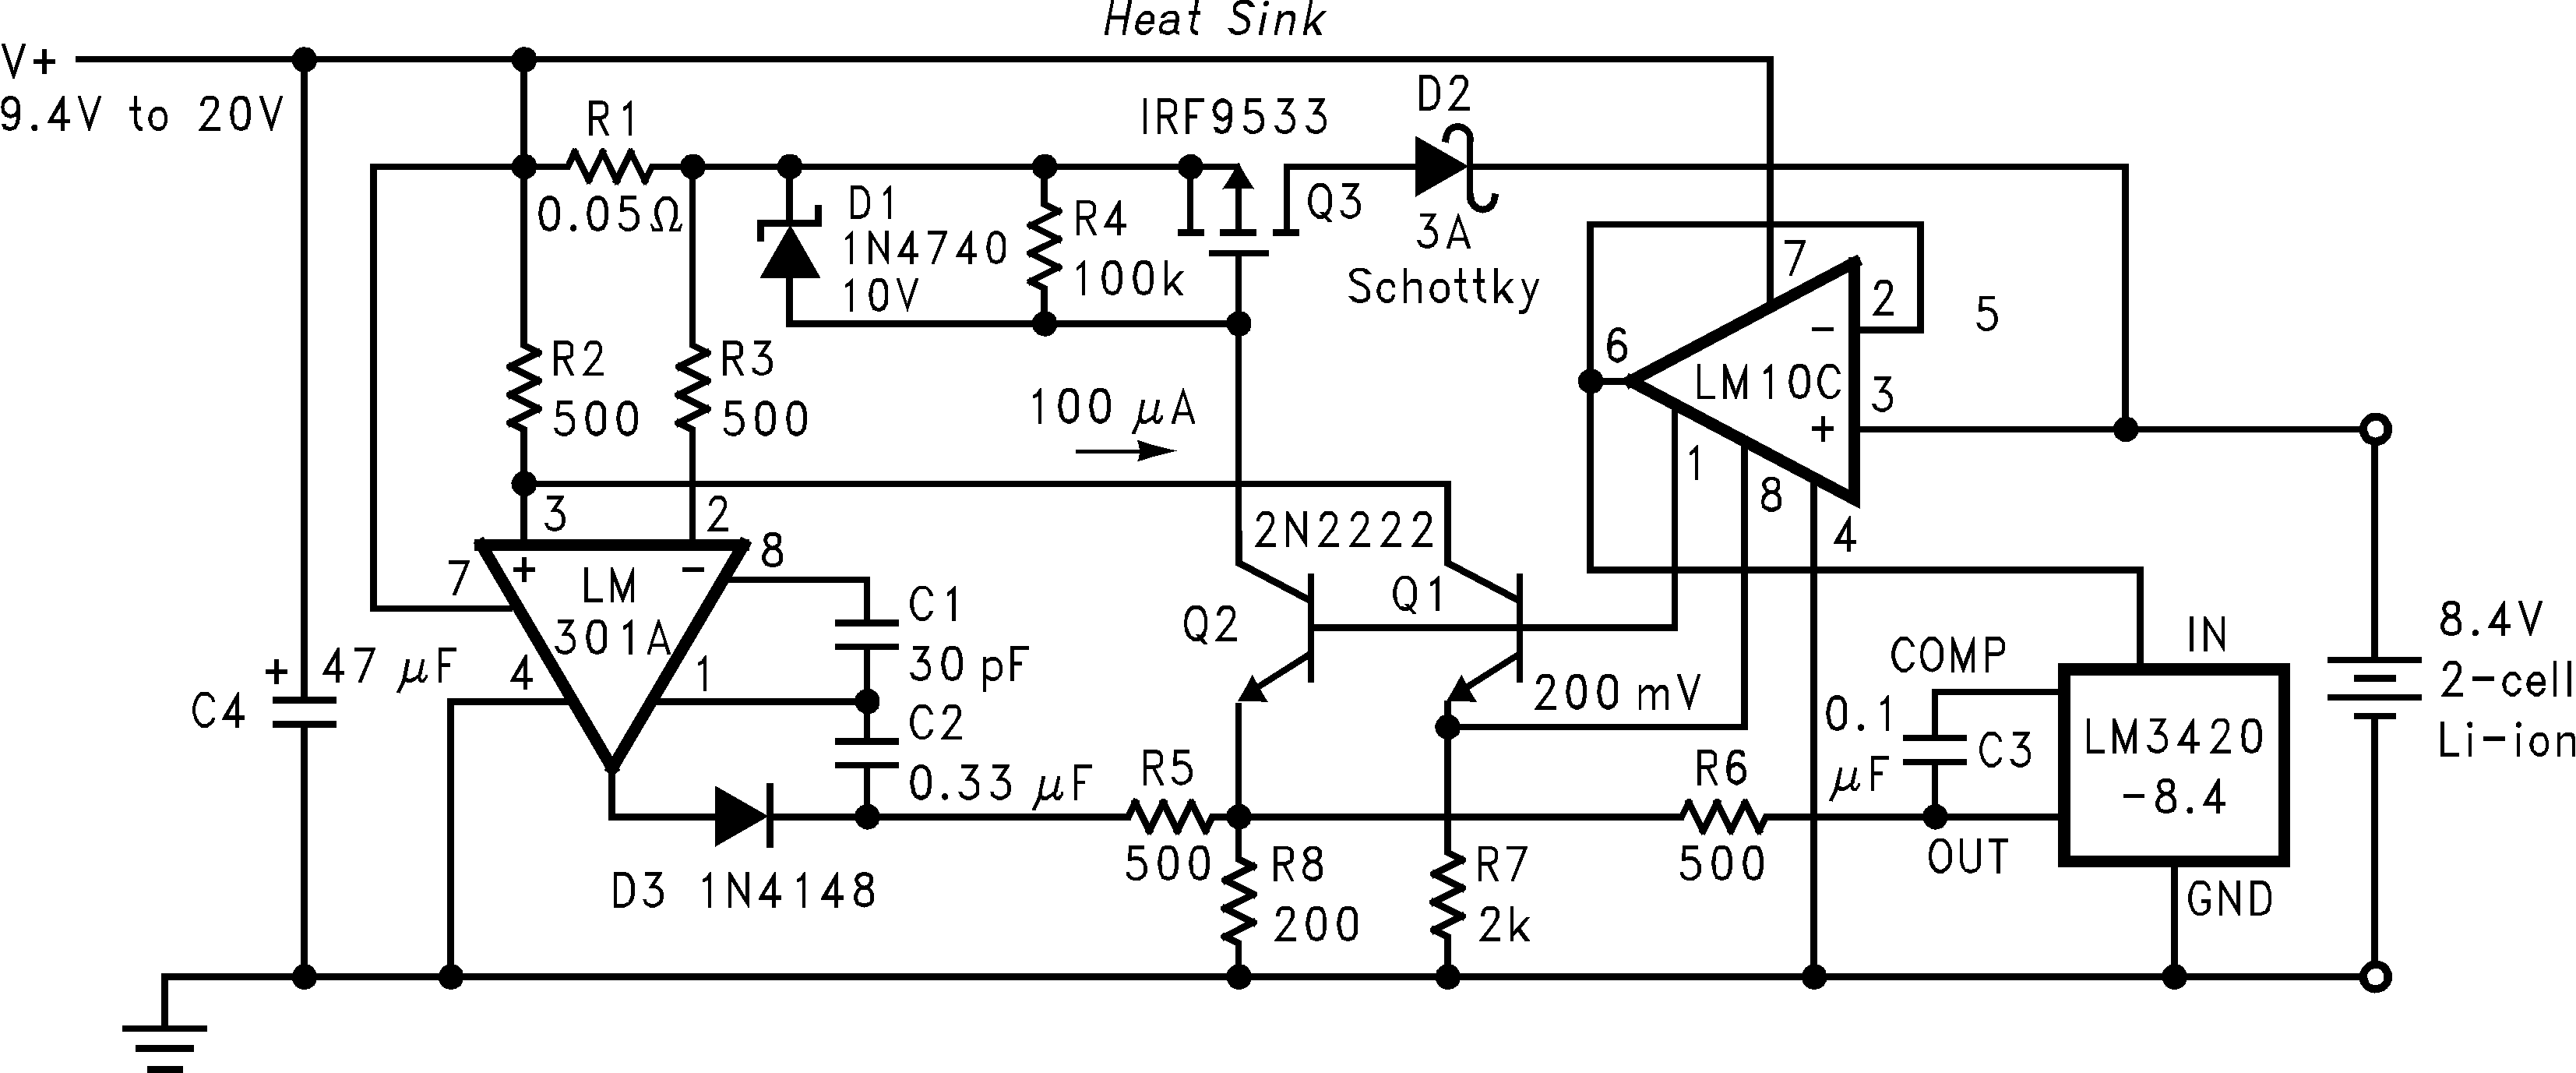 Lm3420 Simple Lithium Ion Charger 2 Cell Circuit Diagram Low Dropout Constant Current Voltage